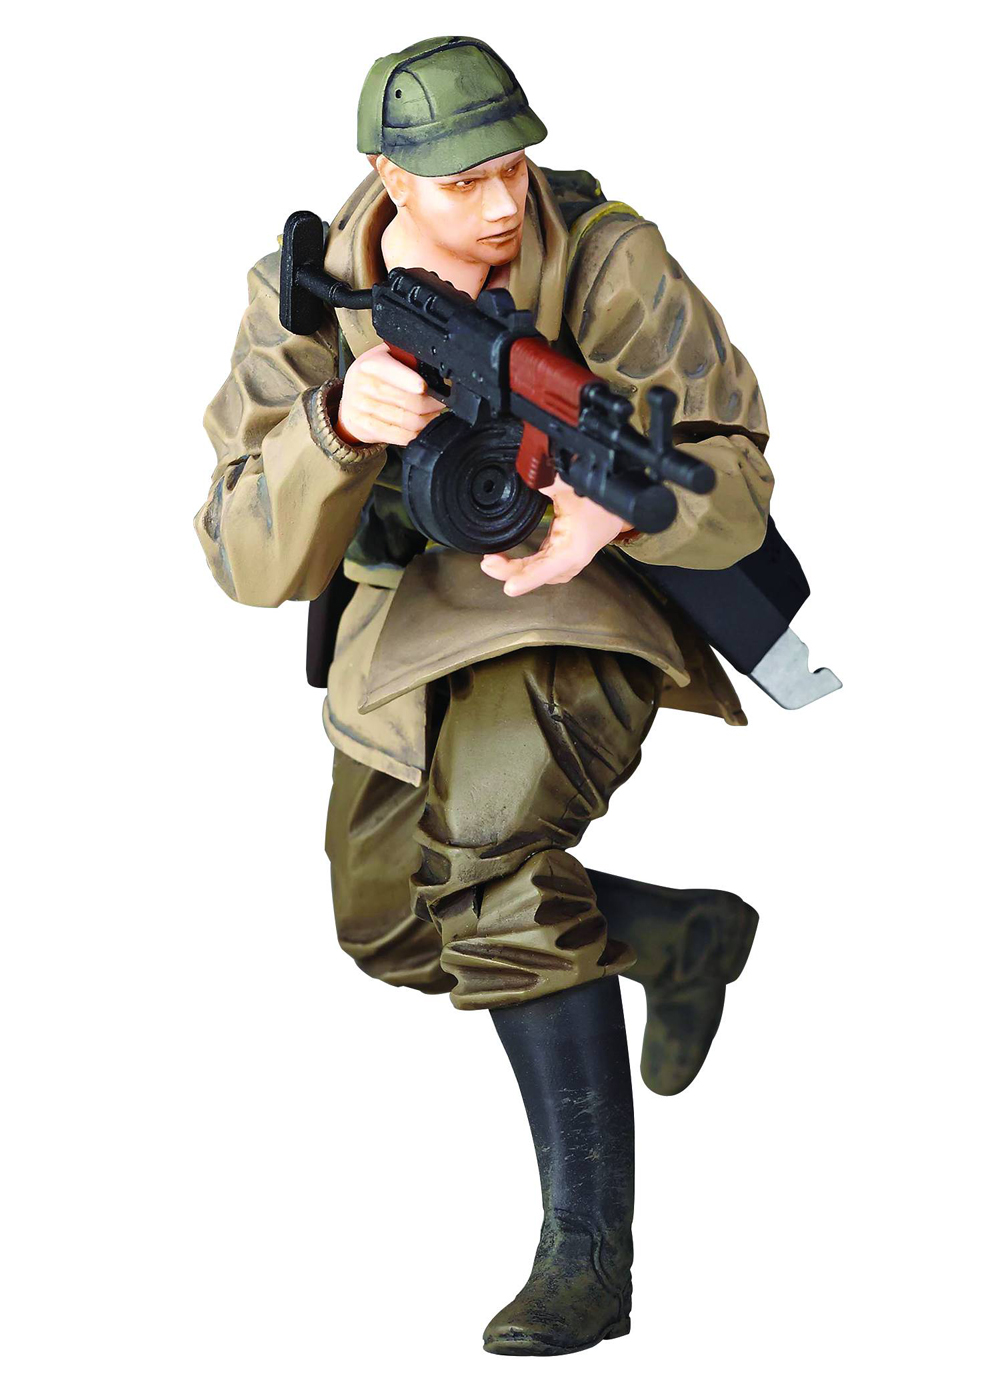 Metal Gear Solid V Soviet Soldier Figure